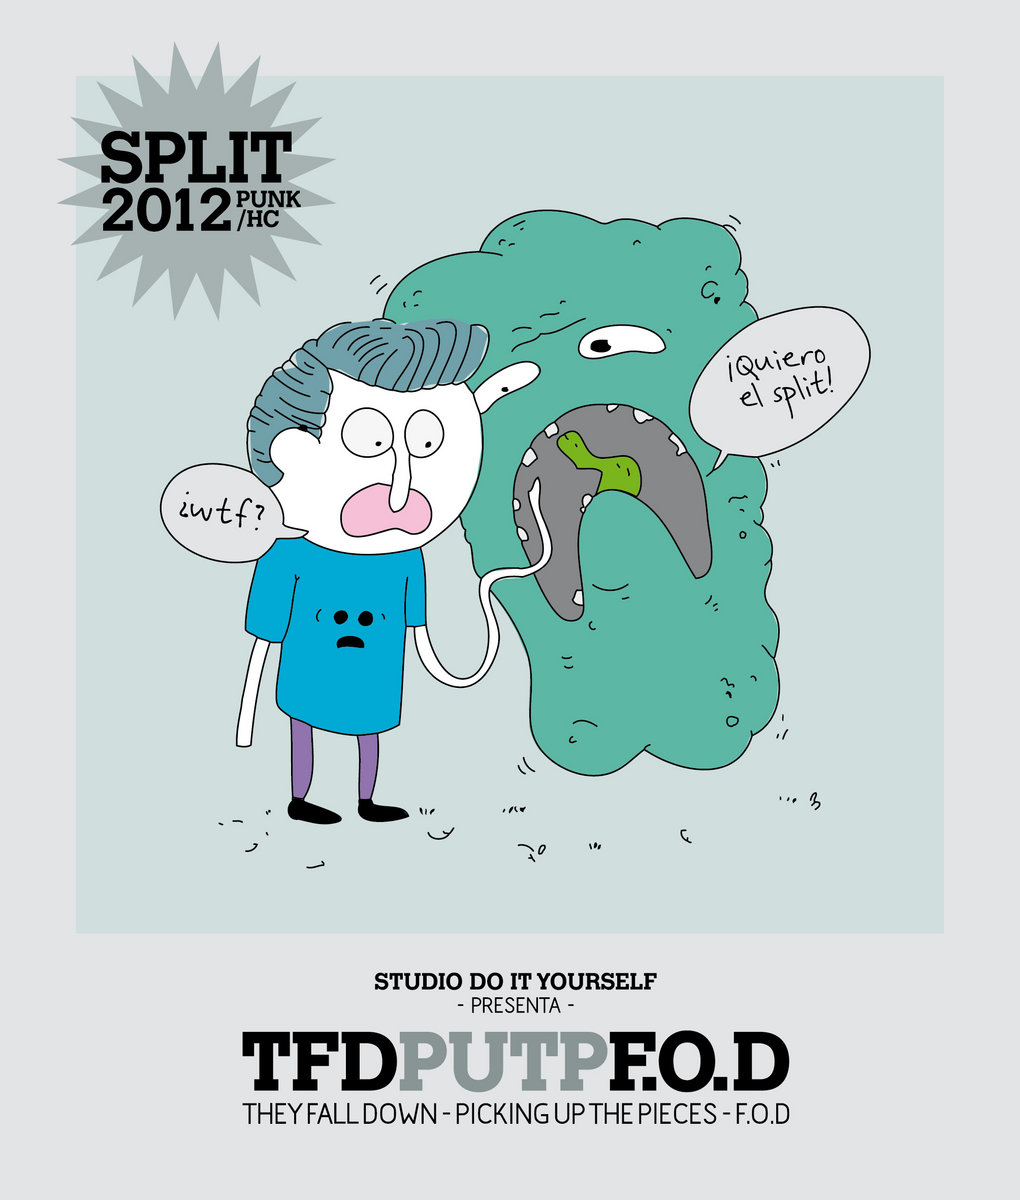 Split tfd putp y fod picking up the pieces by picking up the pieces solutioingenieria Gallery